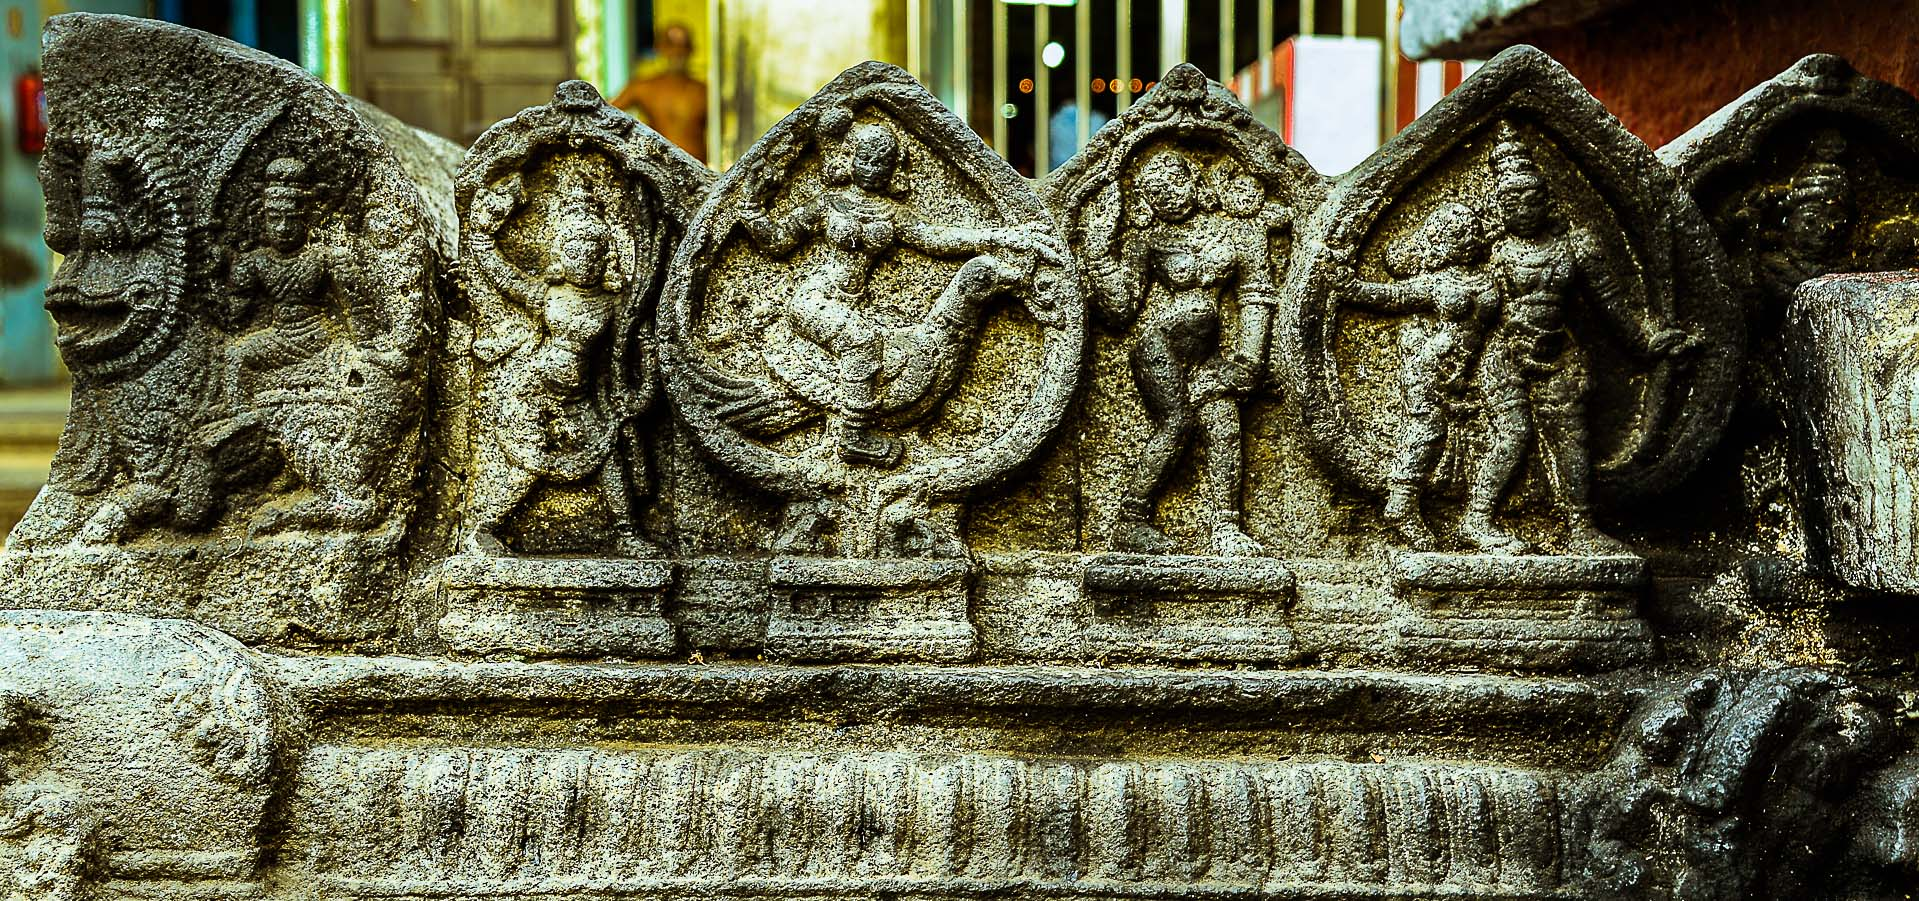 These statues depict the ancient angels that were dominant during the earlier Yugas like Kritha Yuga, Treta Yuga etc.